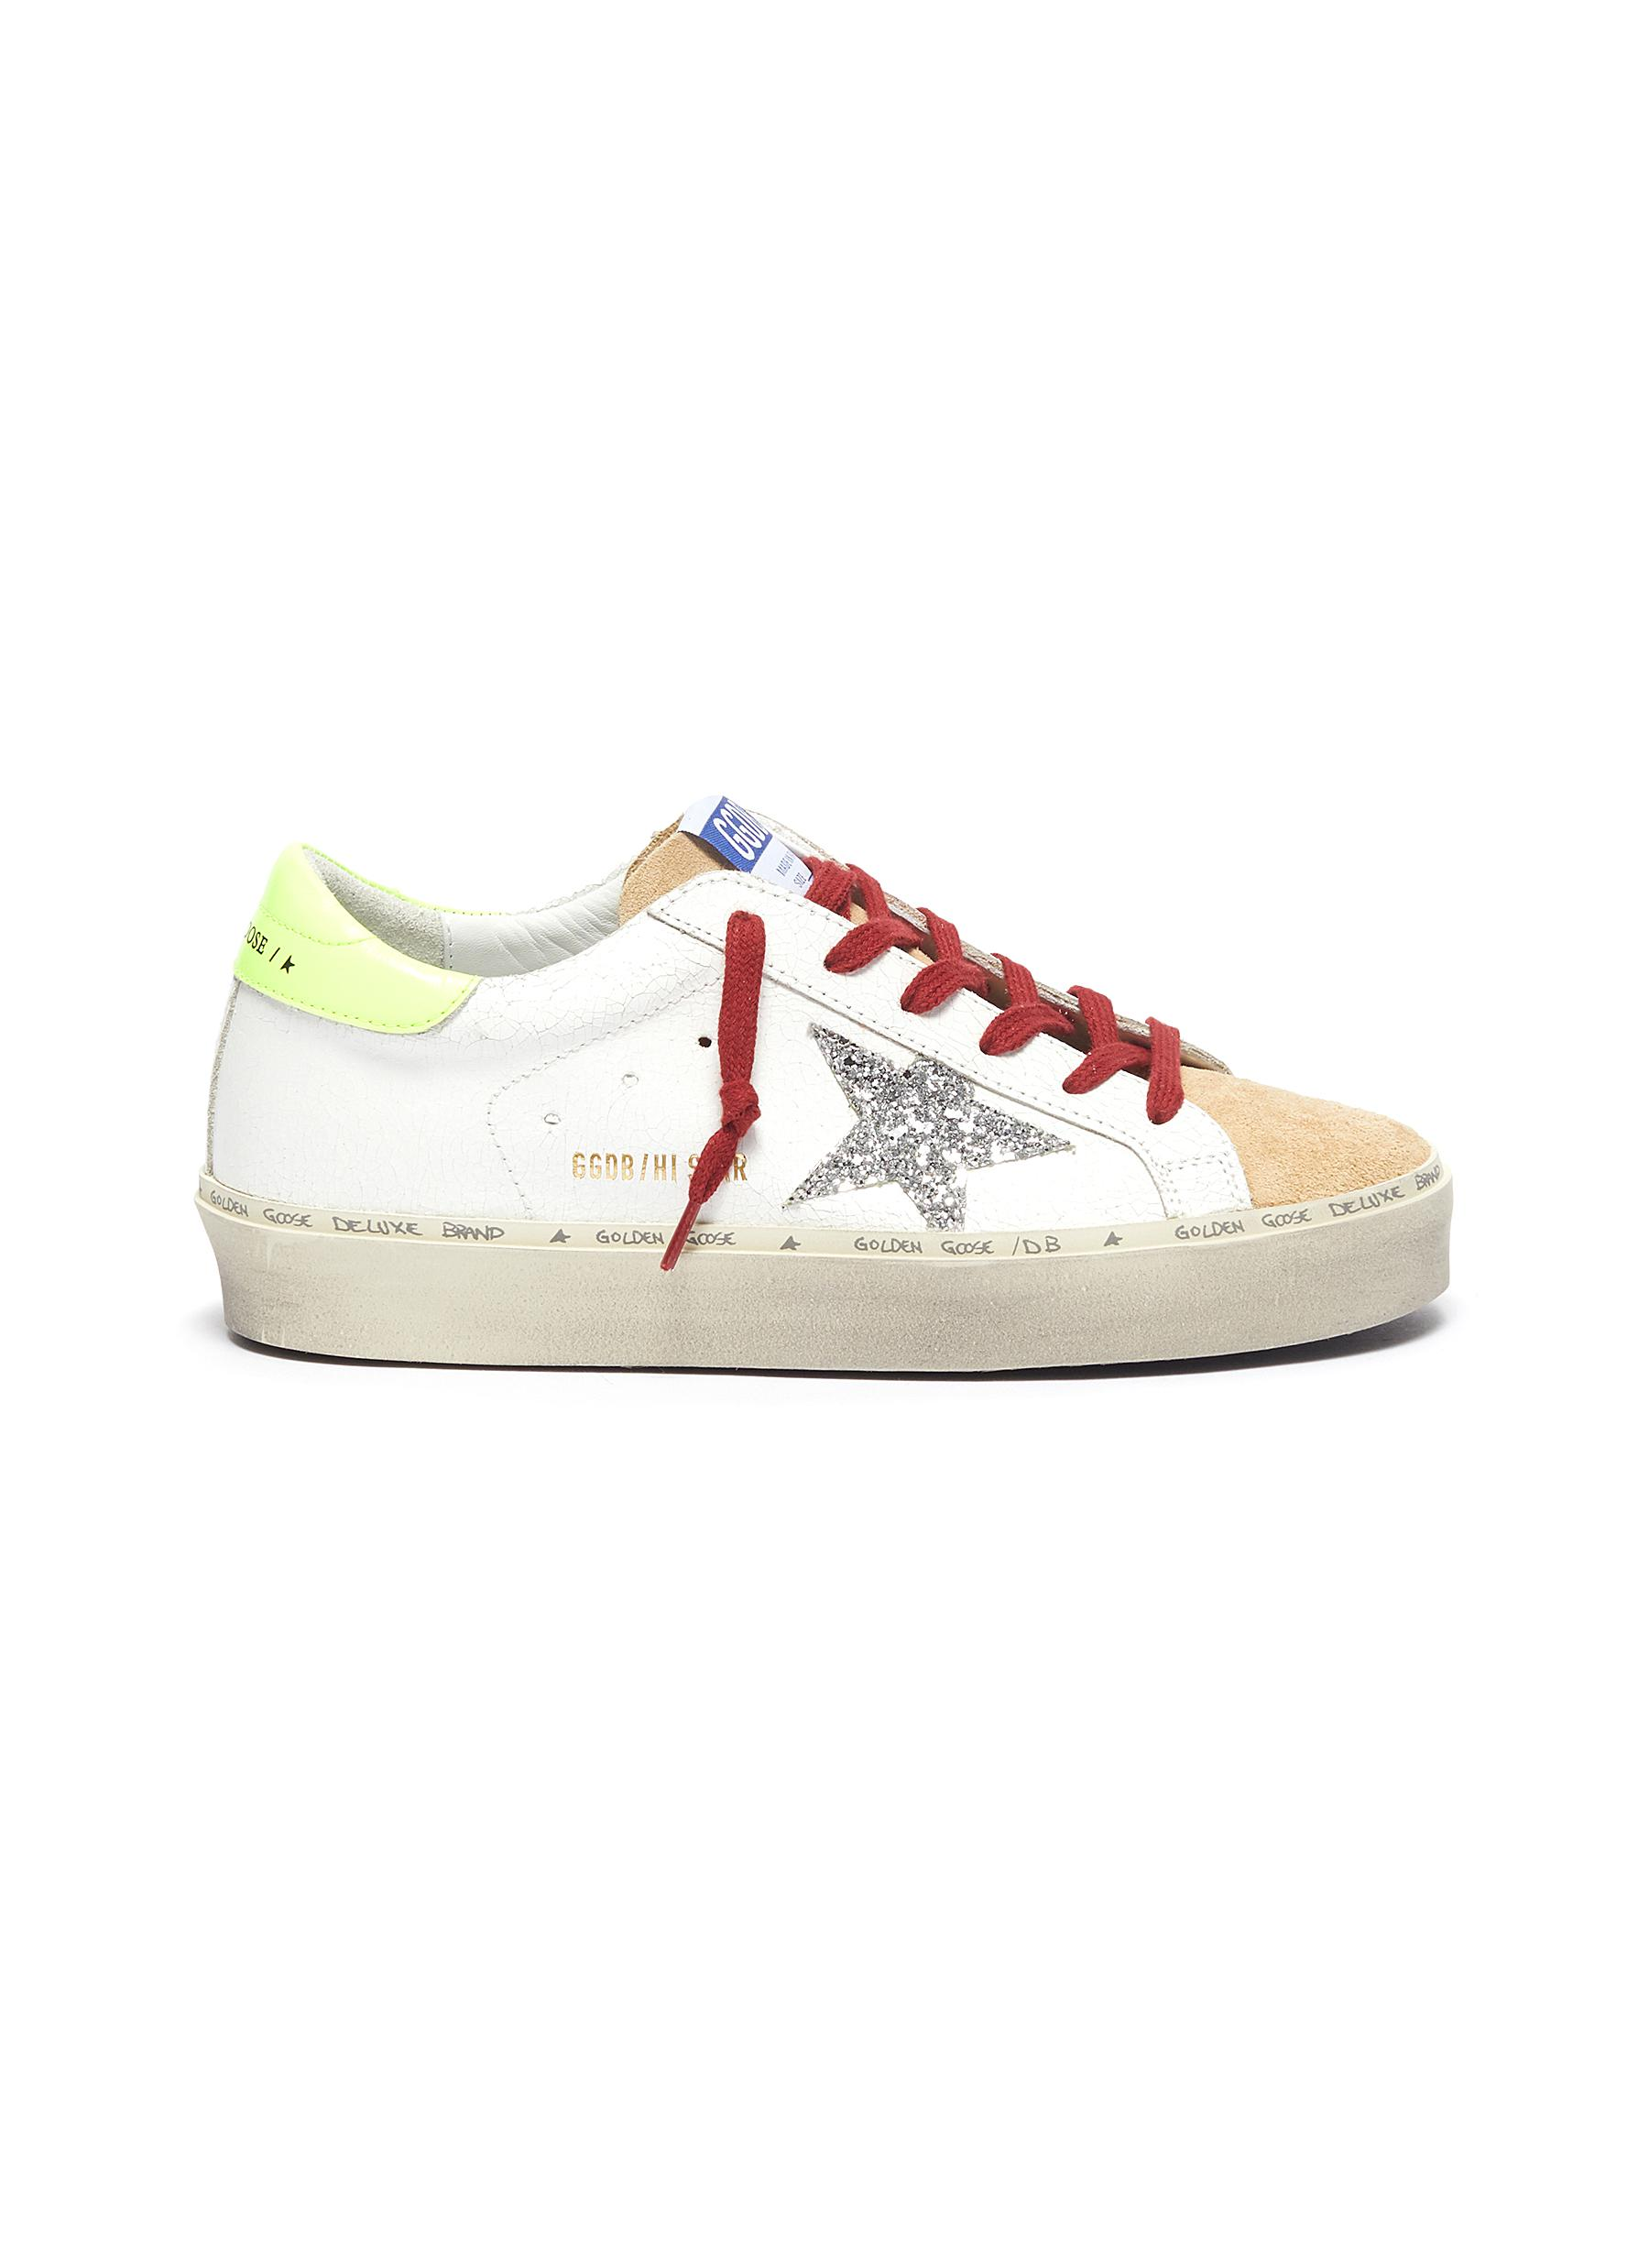 Glitter star textured and suede leather platform sneakers